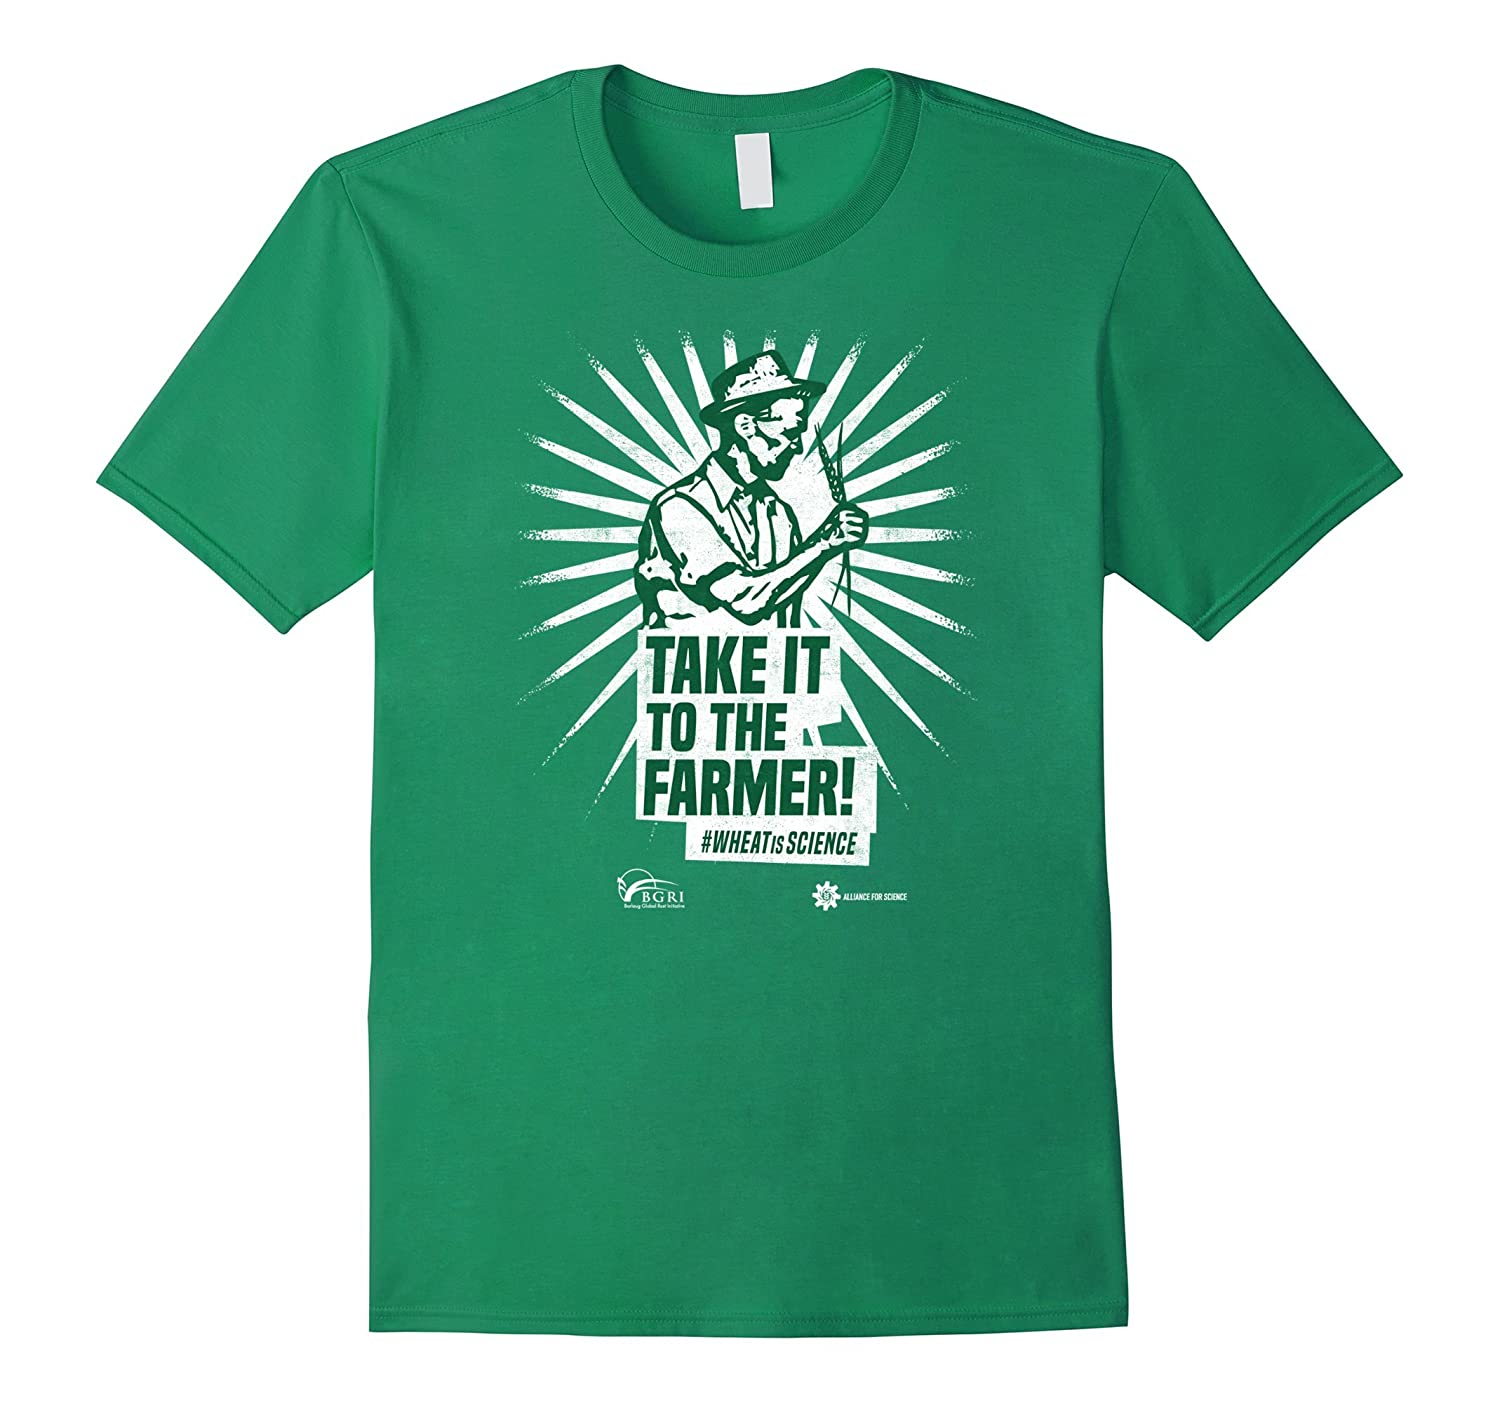 Take it to the farmer - March for science T-shirt-TD